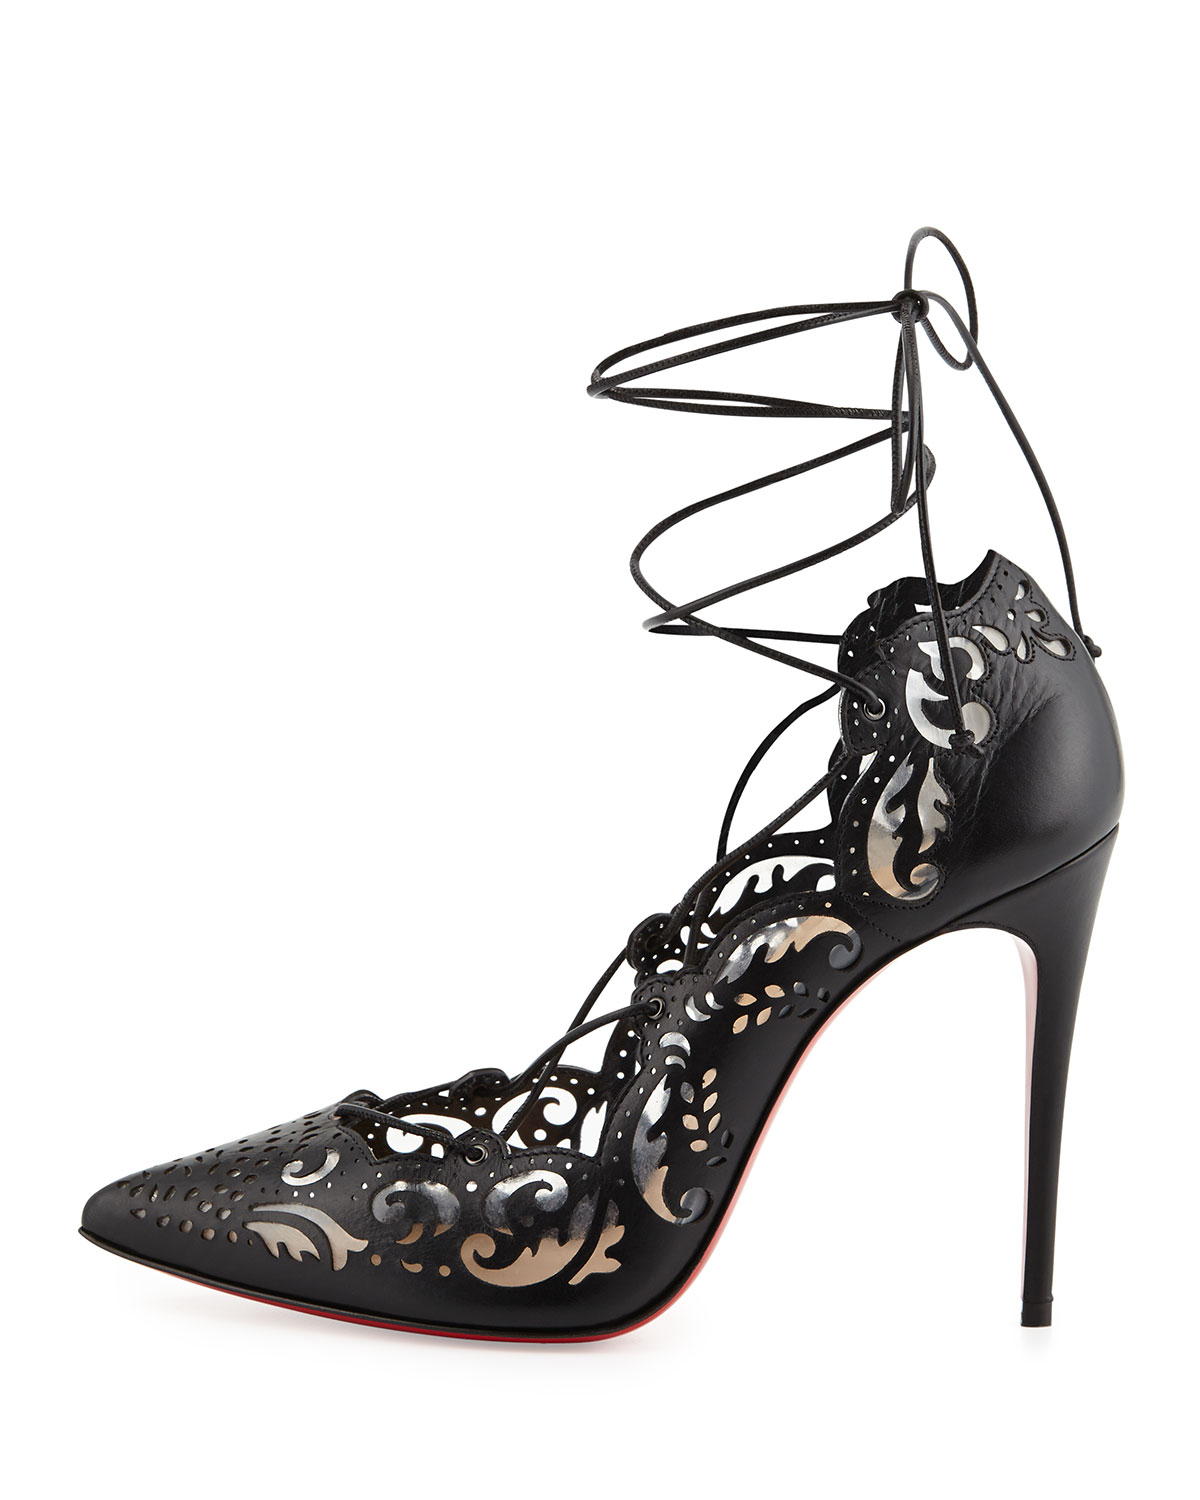 d5caf7088dcf Lyst - Christian Louboutin Impera Laceup Lasercut Red Sole Pump ...